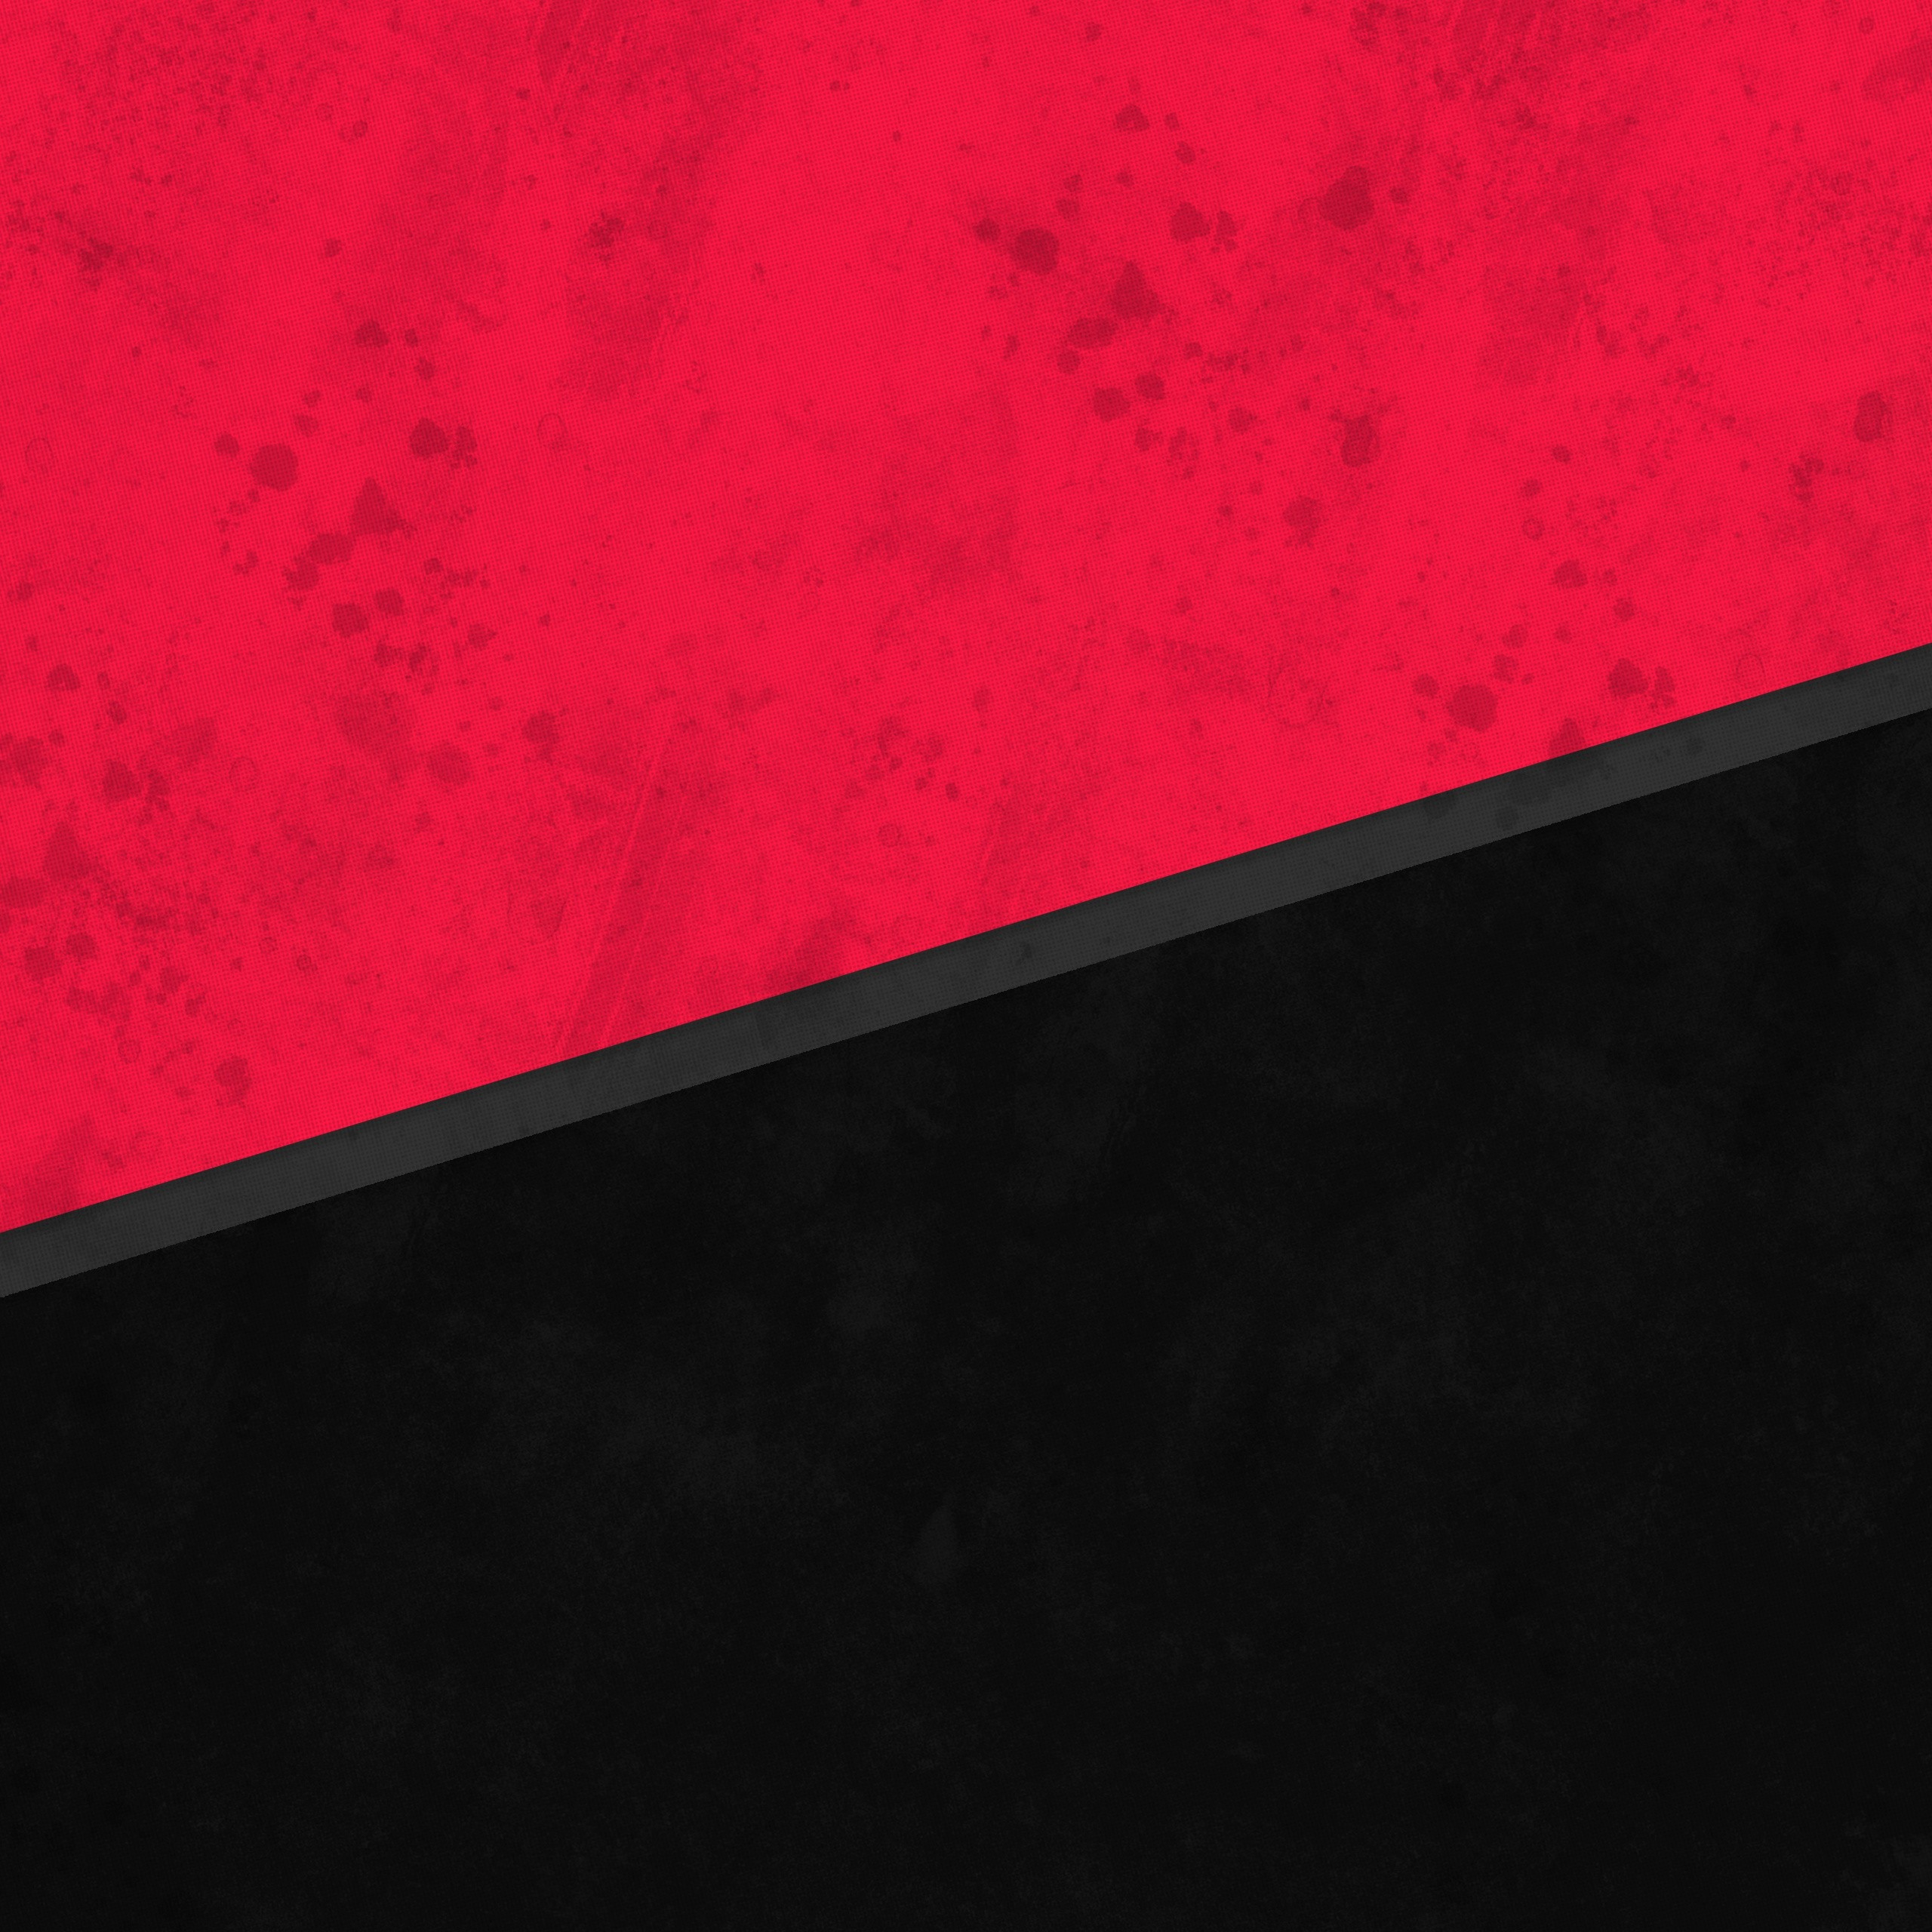 Red Black Texture, HD Abstract, 4k Wallpapers, Images